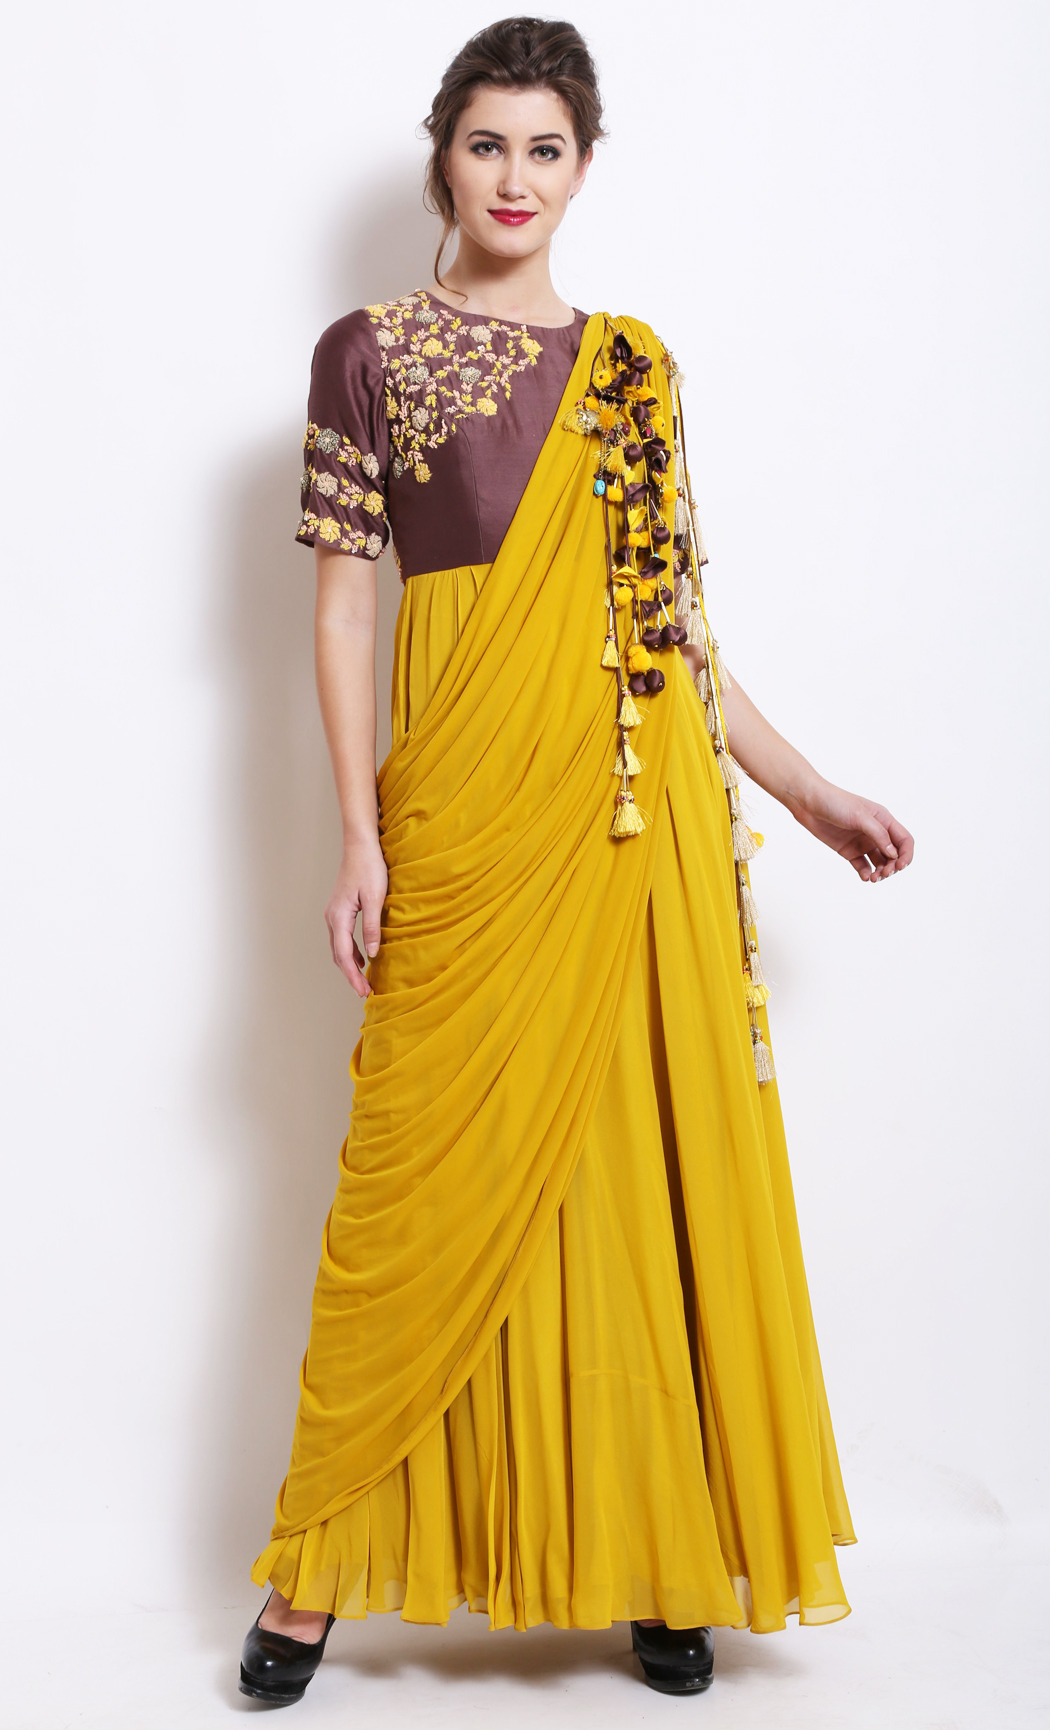 Mustard and Brown Anarkali Kurta with a Draped Dupatta - Buy Online